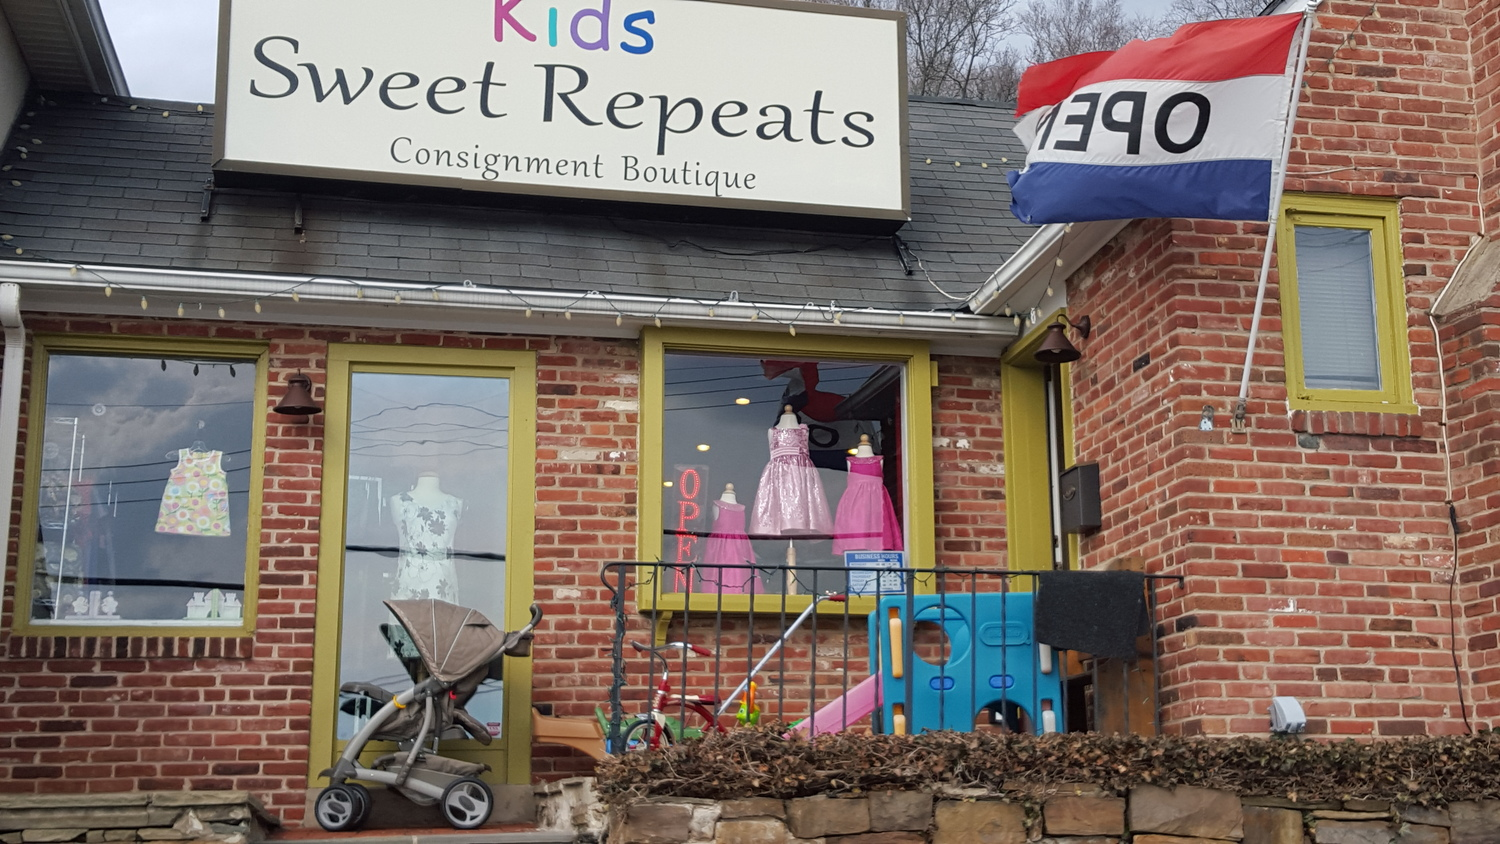 6e56aef59 Contact Us — Kids Sweet Repeats Consignment Boutique